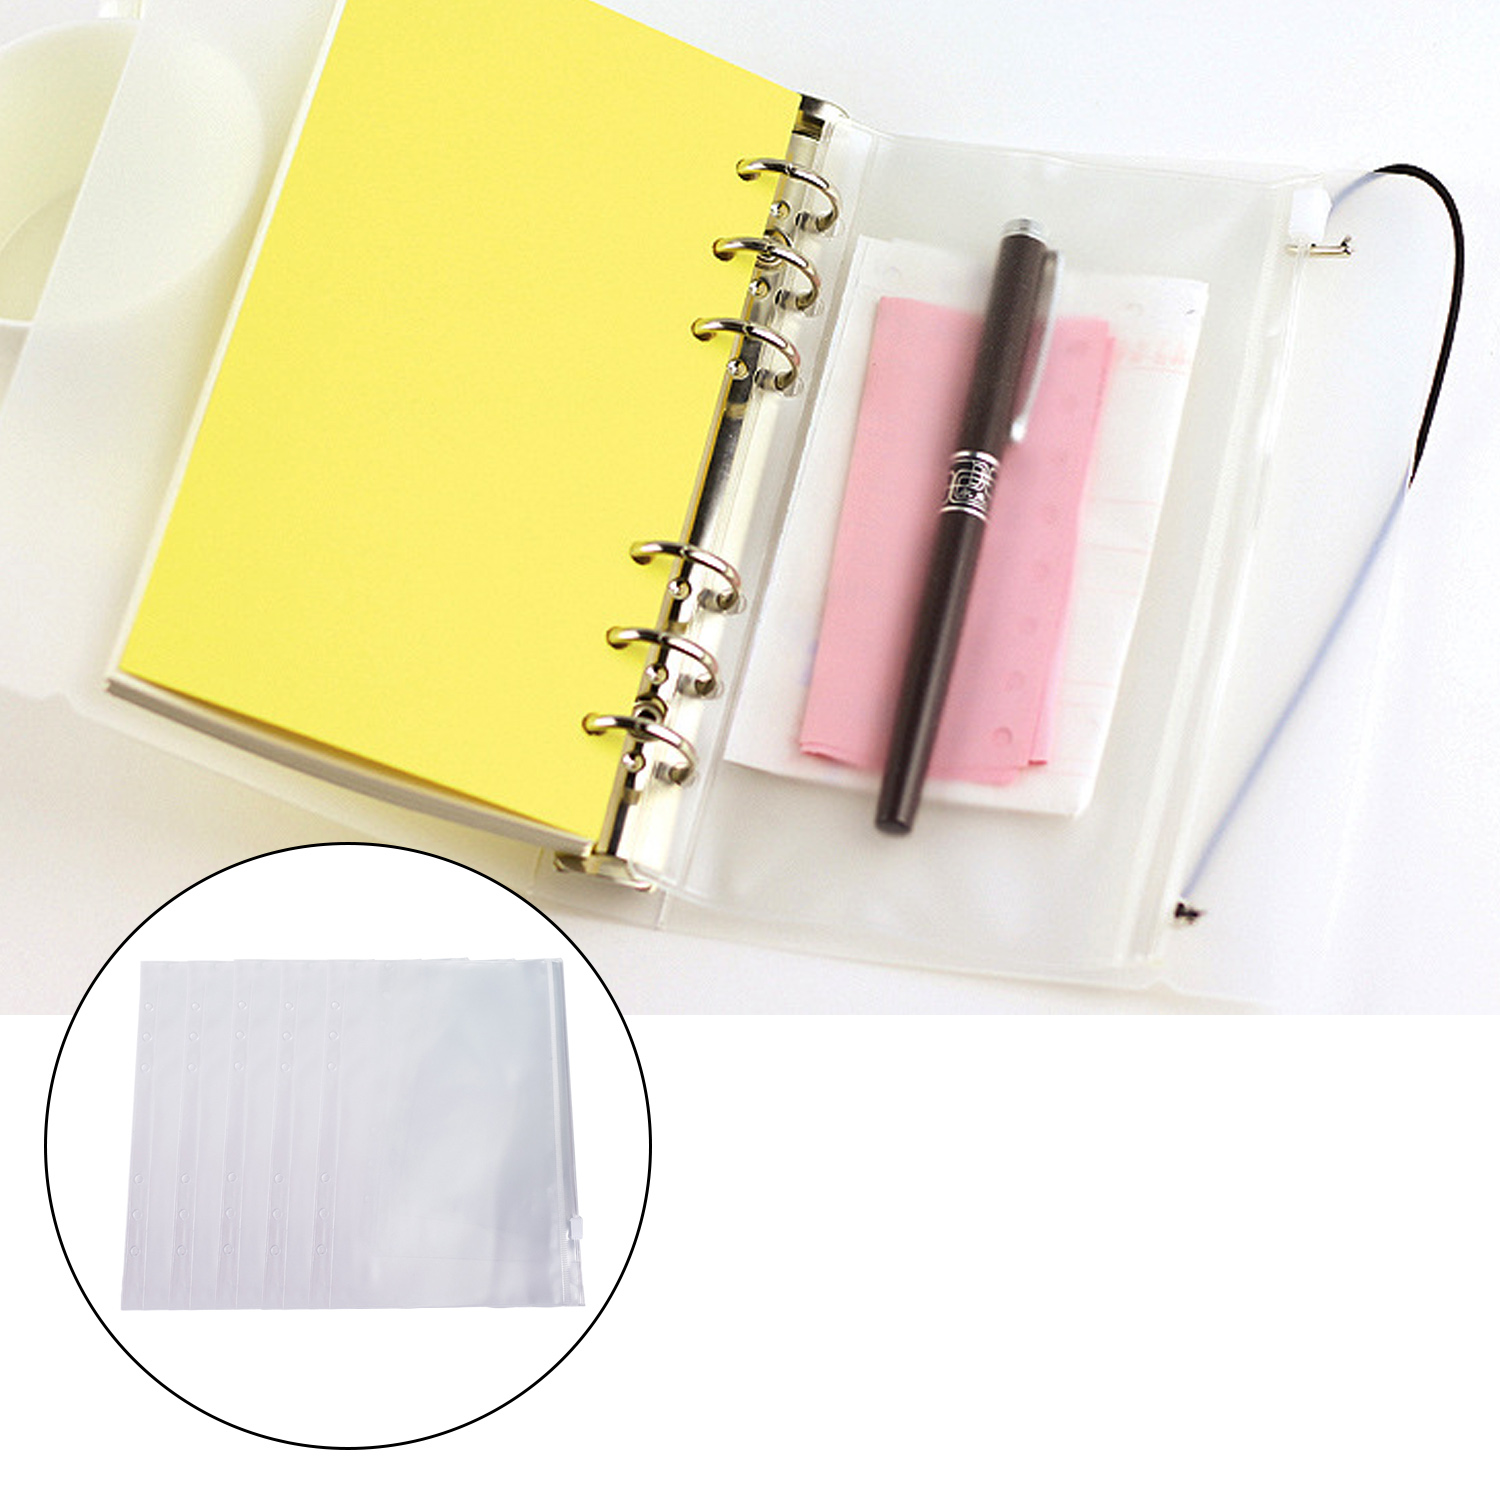 5pcs A5/A6 Clear PVC Zipper Binder Pockets 6 Hole Documents File Folder Filing Holder Pouch Bag Protectors